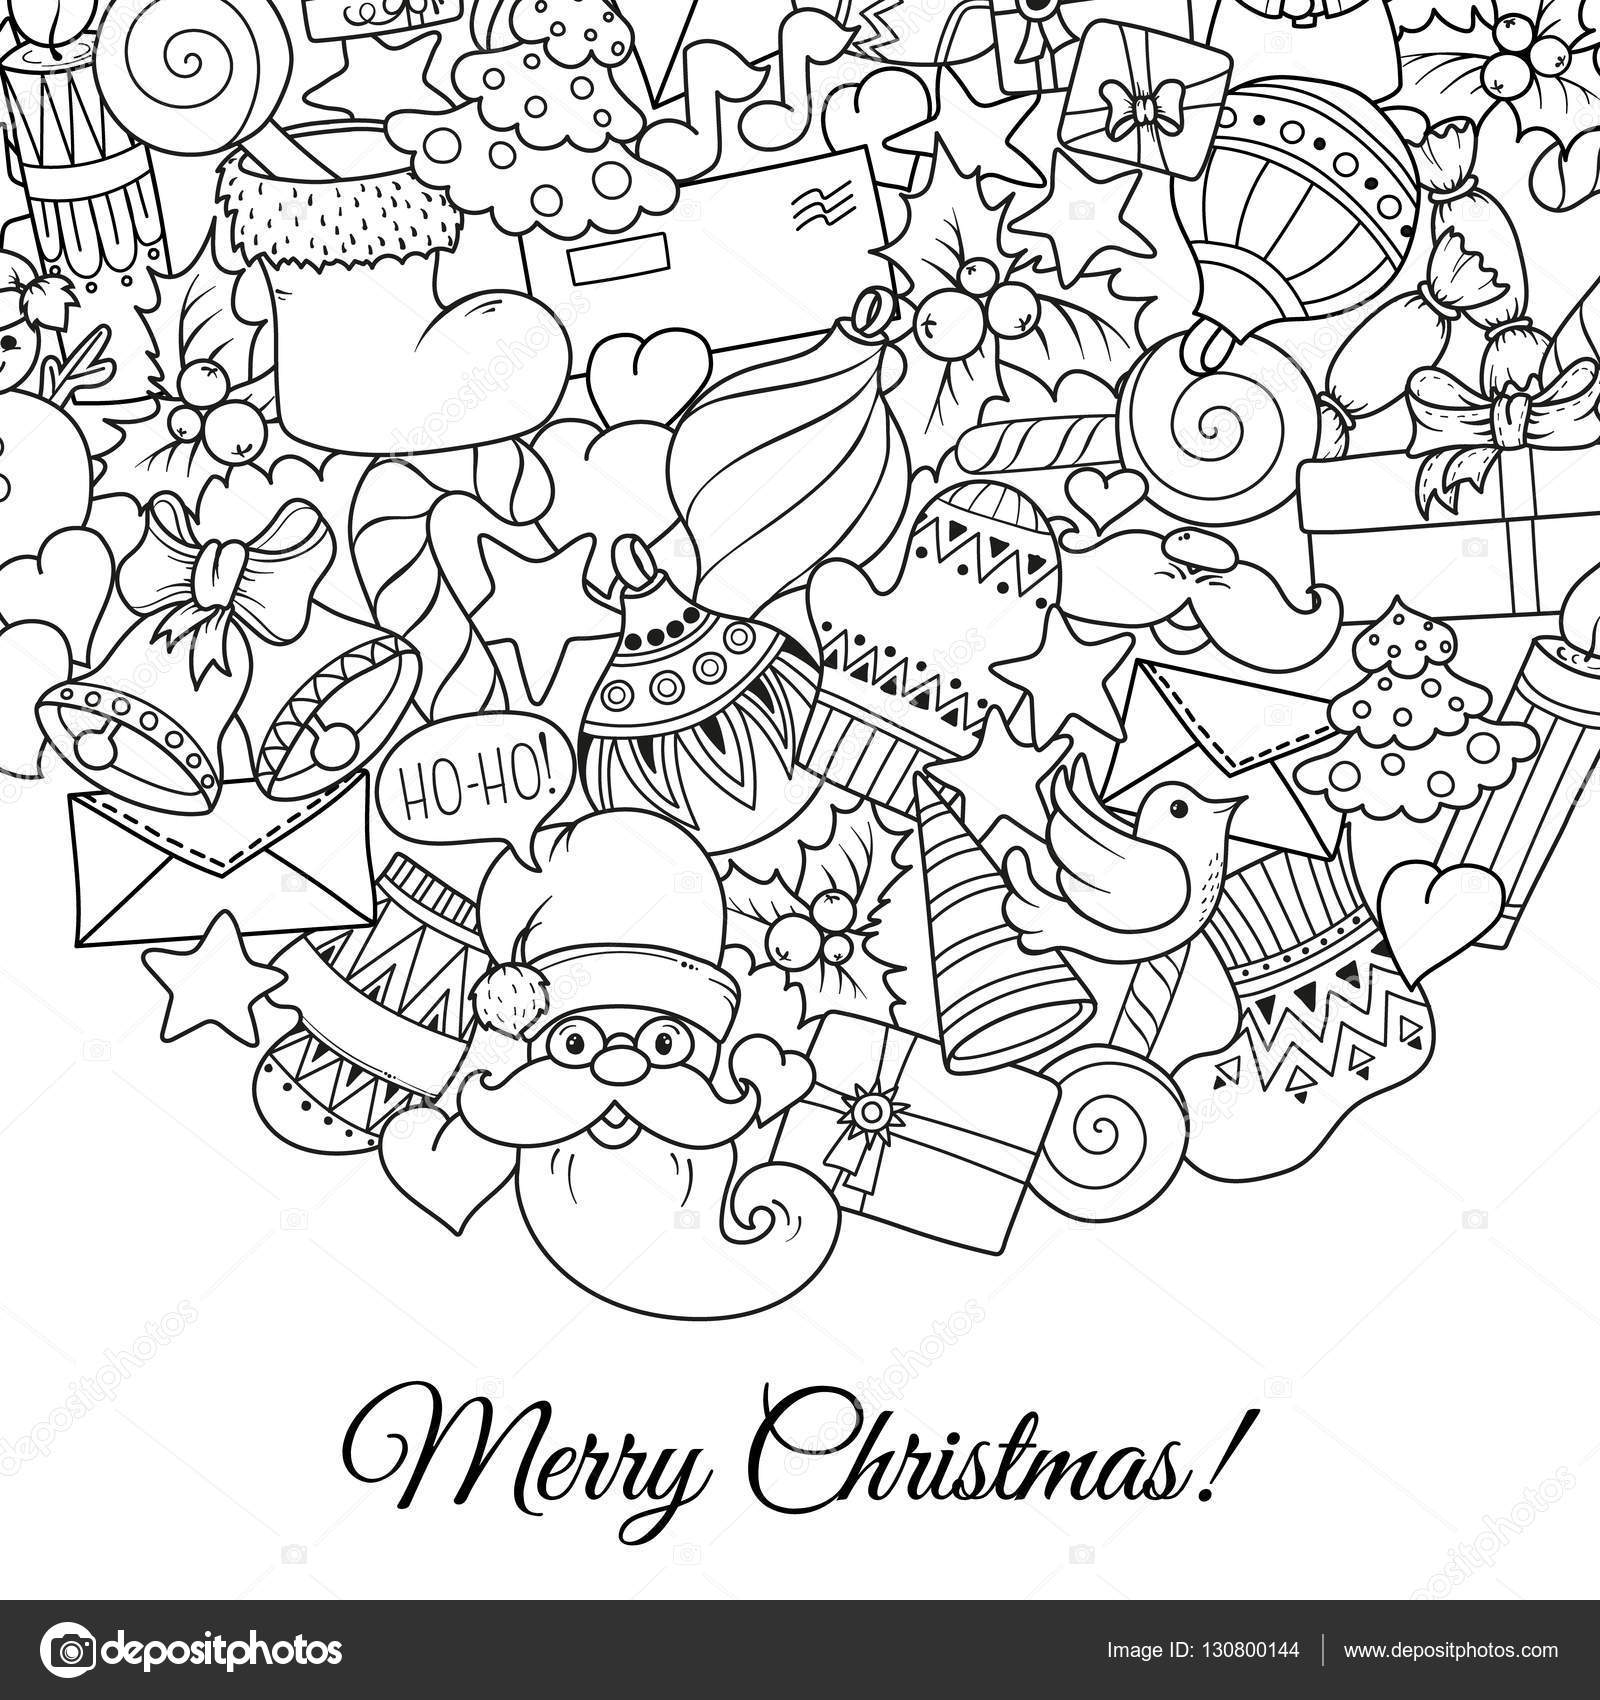 Merry Christmas Set Of Xmas Monochrome Pattern And Text Templates Ideal For Holiday Greeting Cards Print Coloring Book Page Or Wrapping Paper